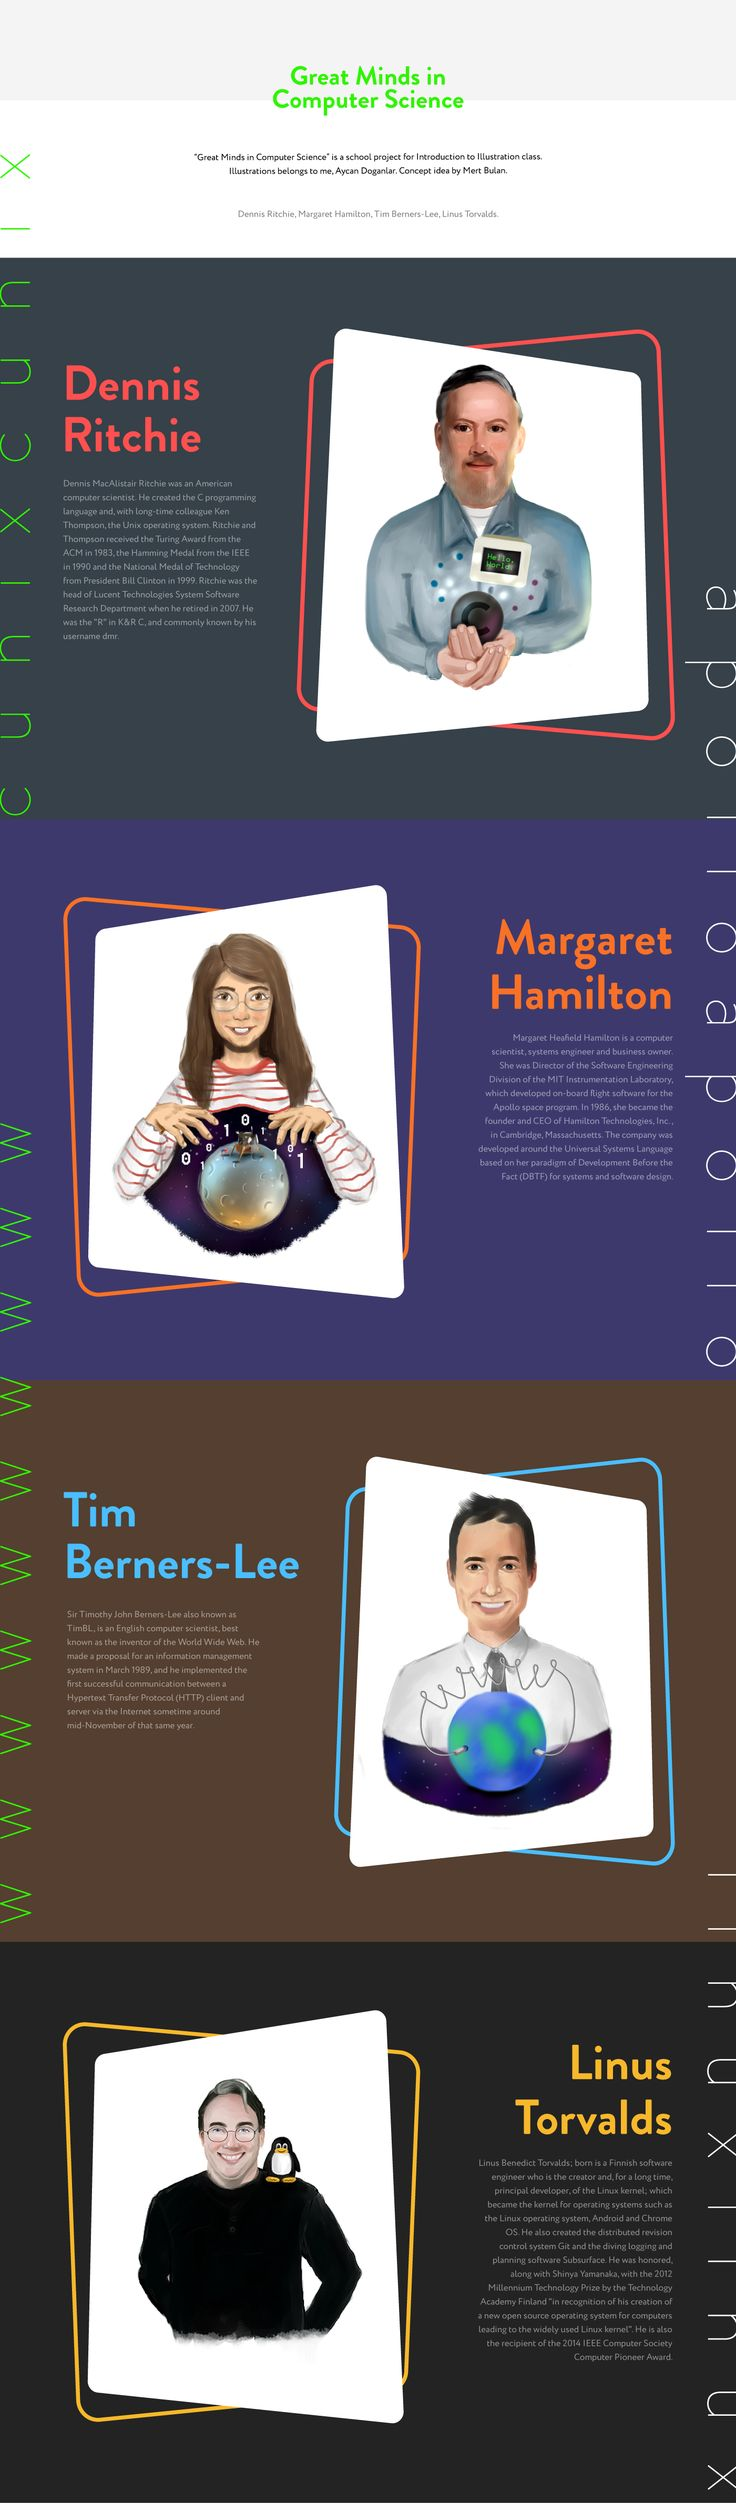 Dennis Ritchie, Margaret Hamilton, Tim Berners-Lee, Linus Torvalds